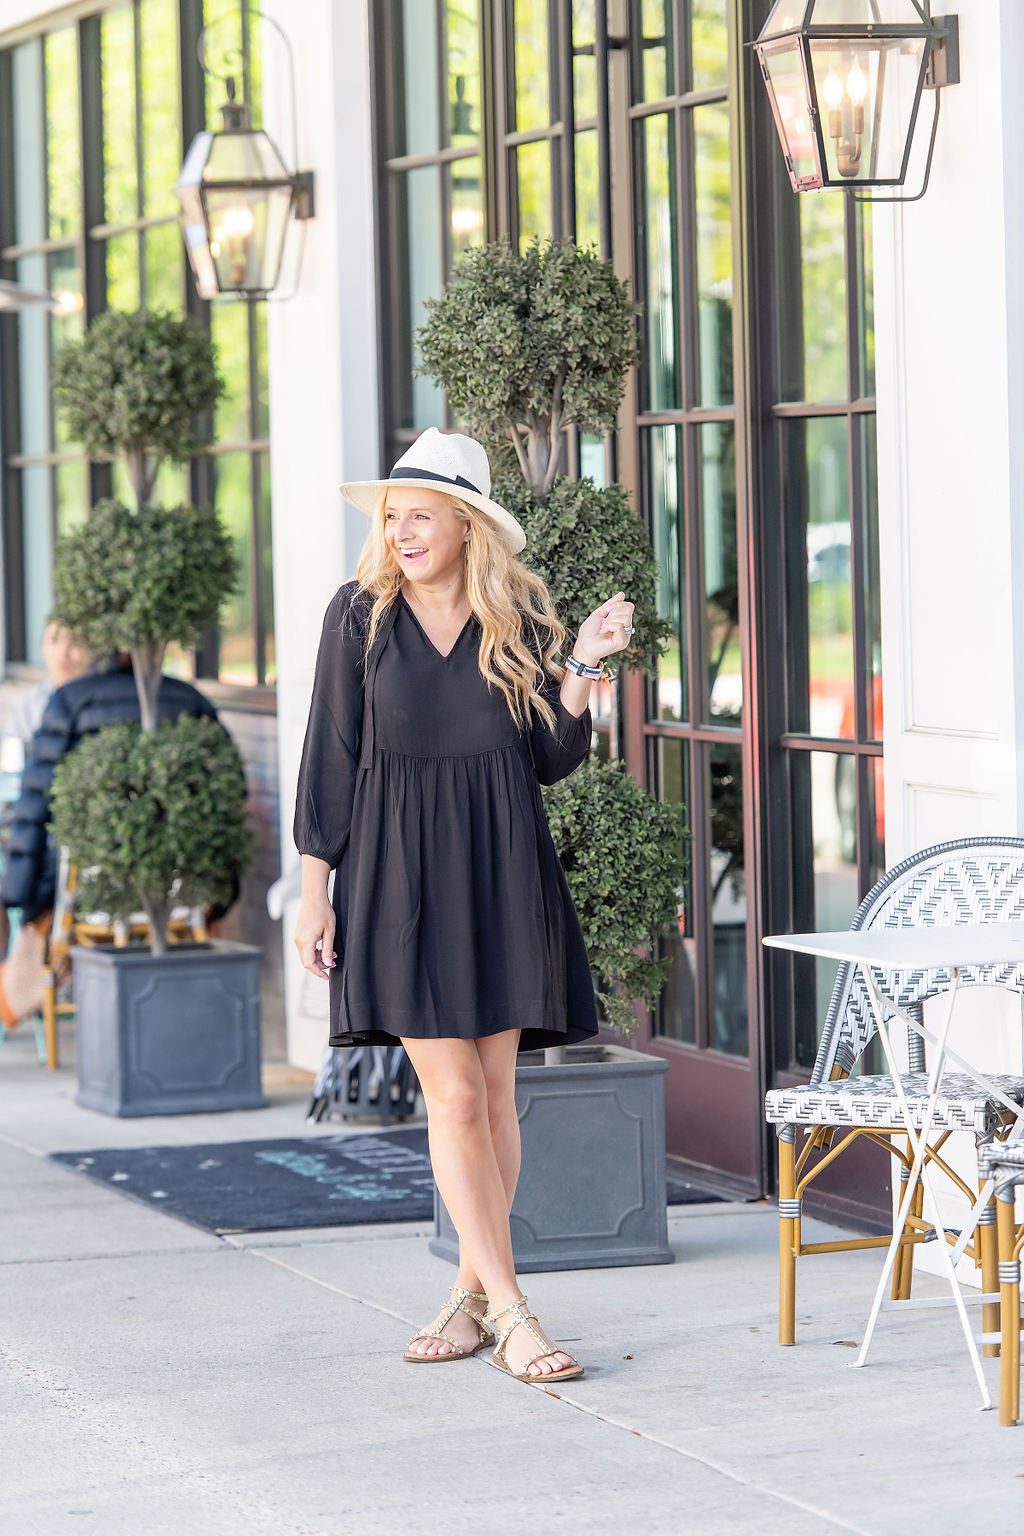 Little Black Dresses by popular Houston fashion blog, The House of Fancy: image of a woman wearing a black baby swing dress, white fedora hat, and studded strap sandals.